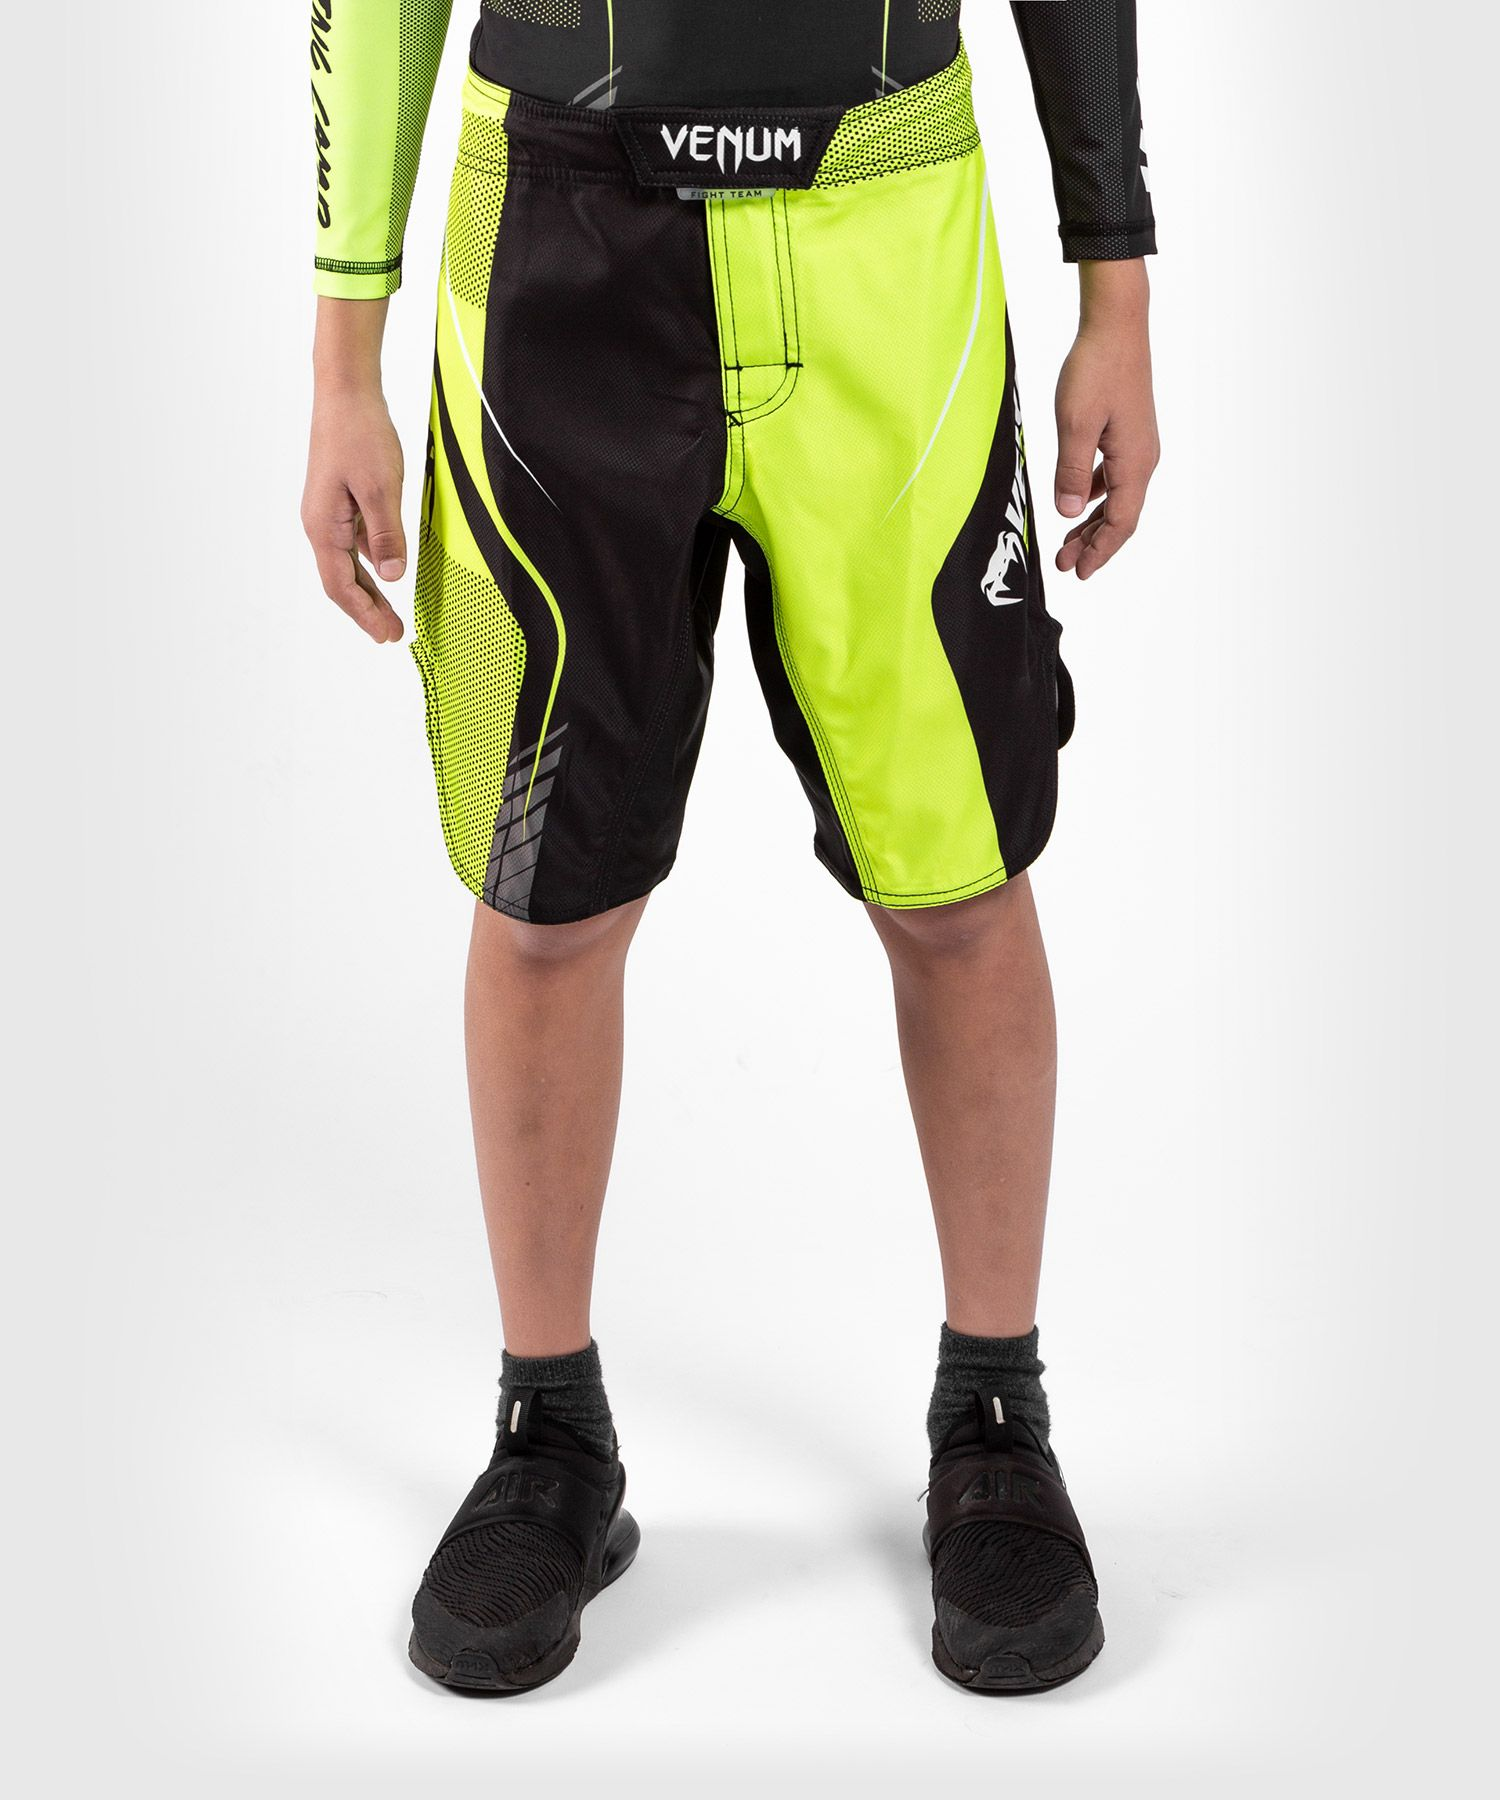 Venum Training 3.0 Fightshorts - bambini